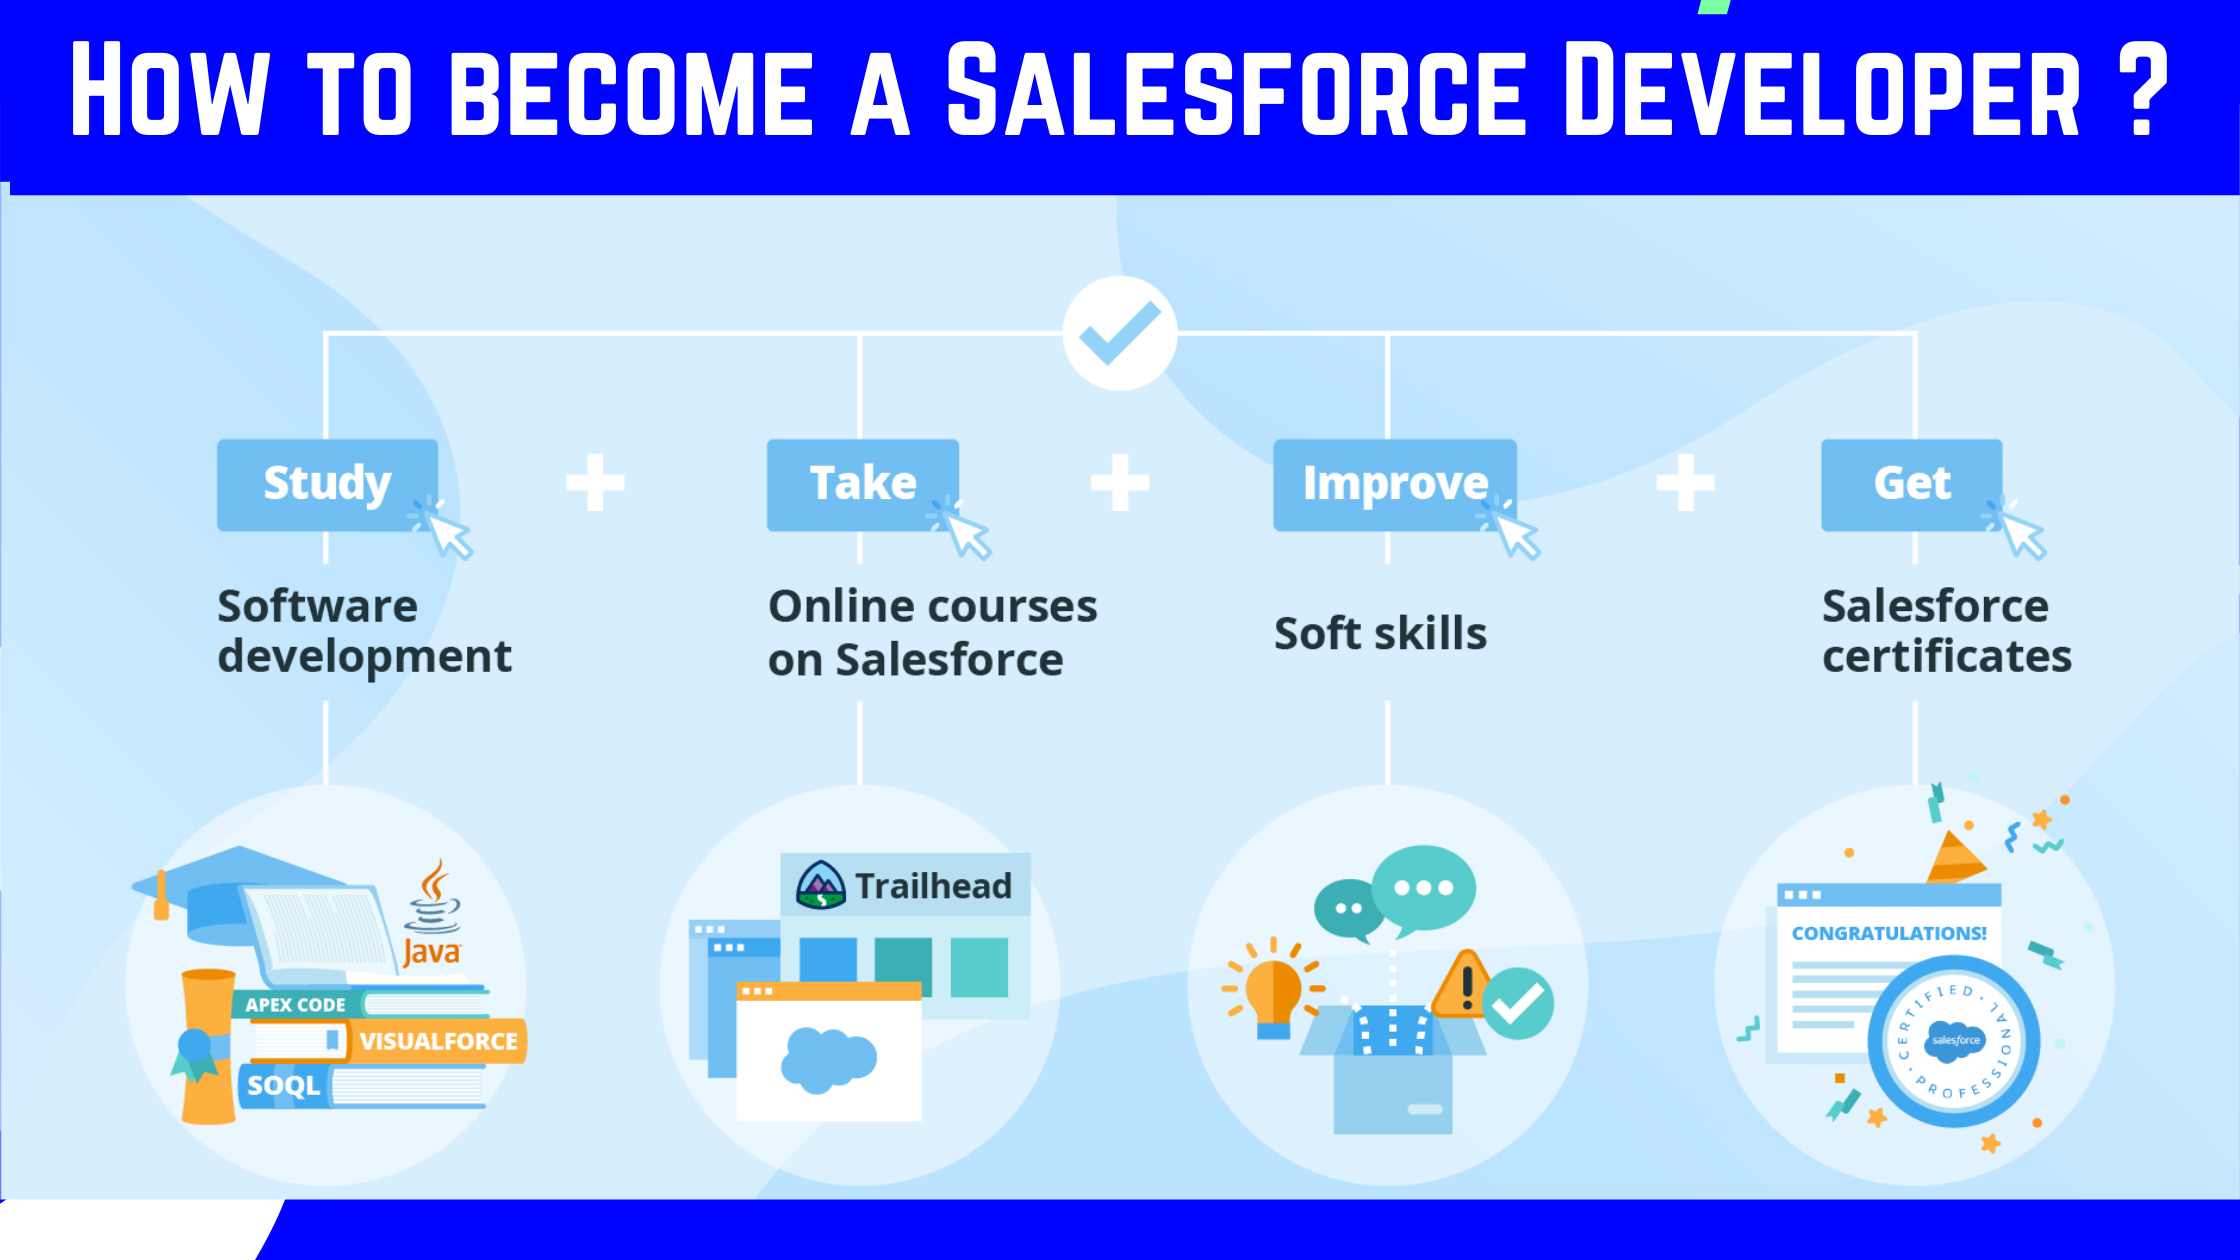 How to Become a Salesforce Developer | Complete Step-by-Step Guide